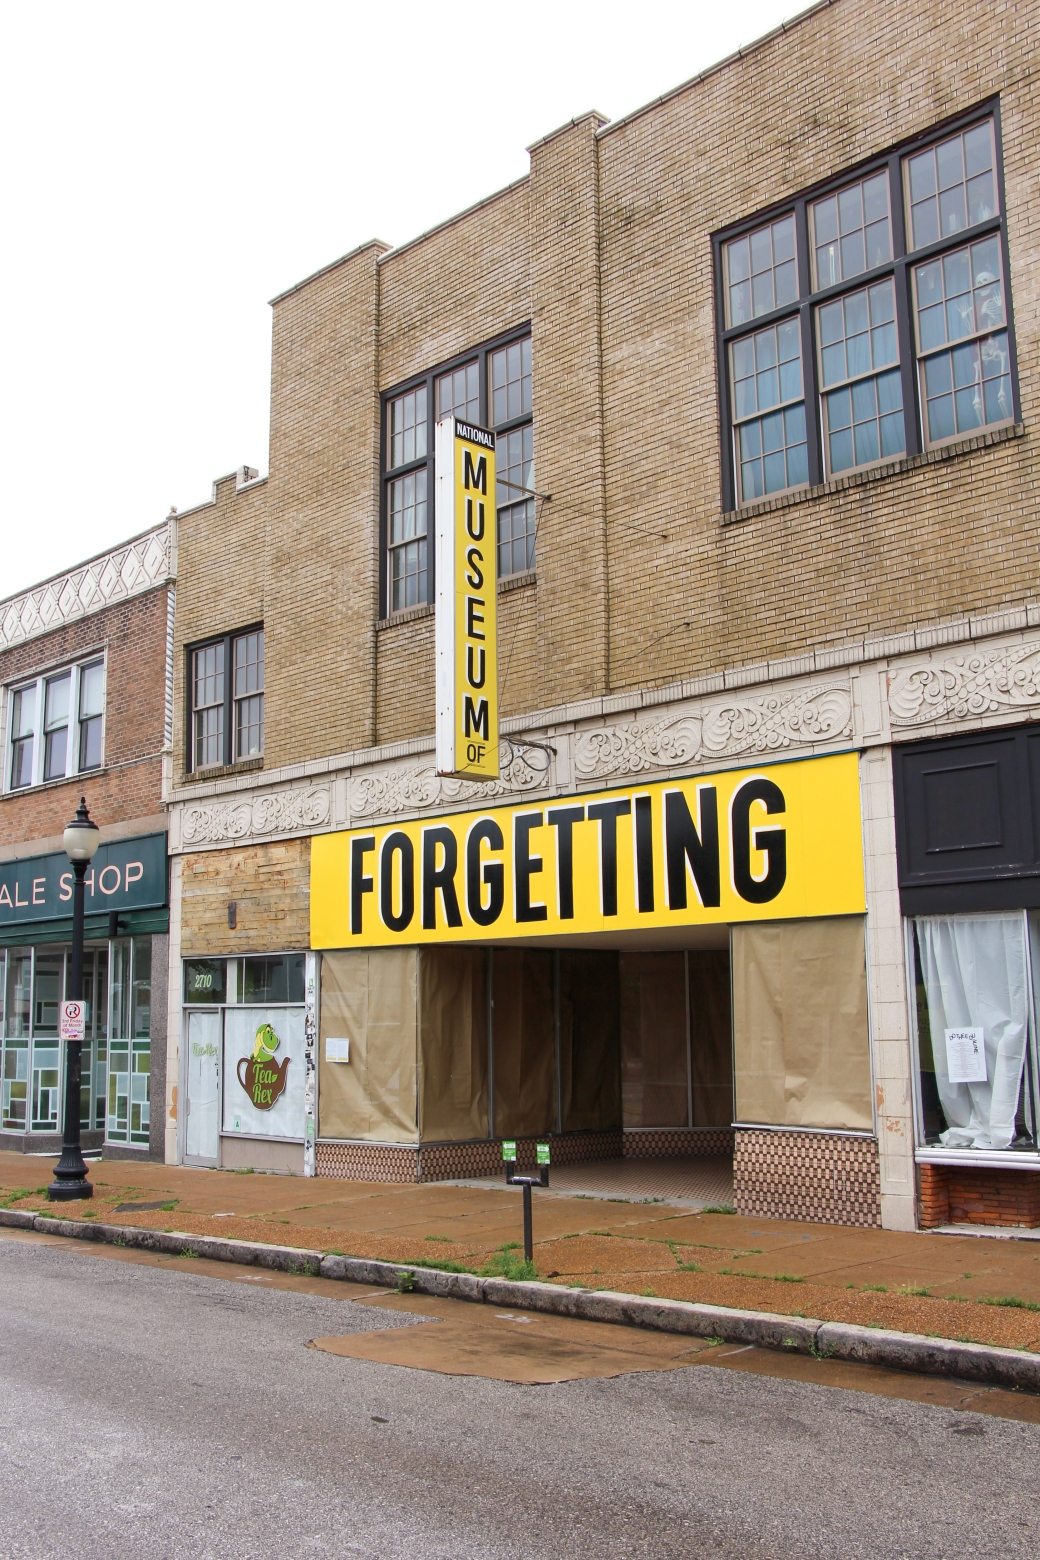 Forgetting-1-6